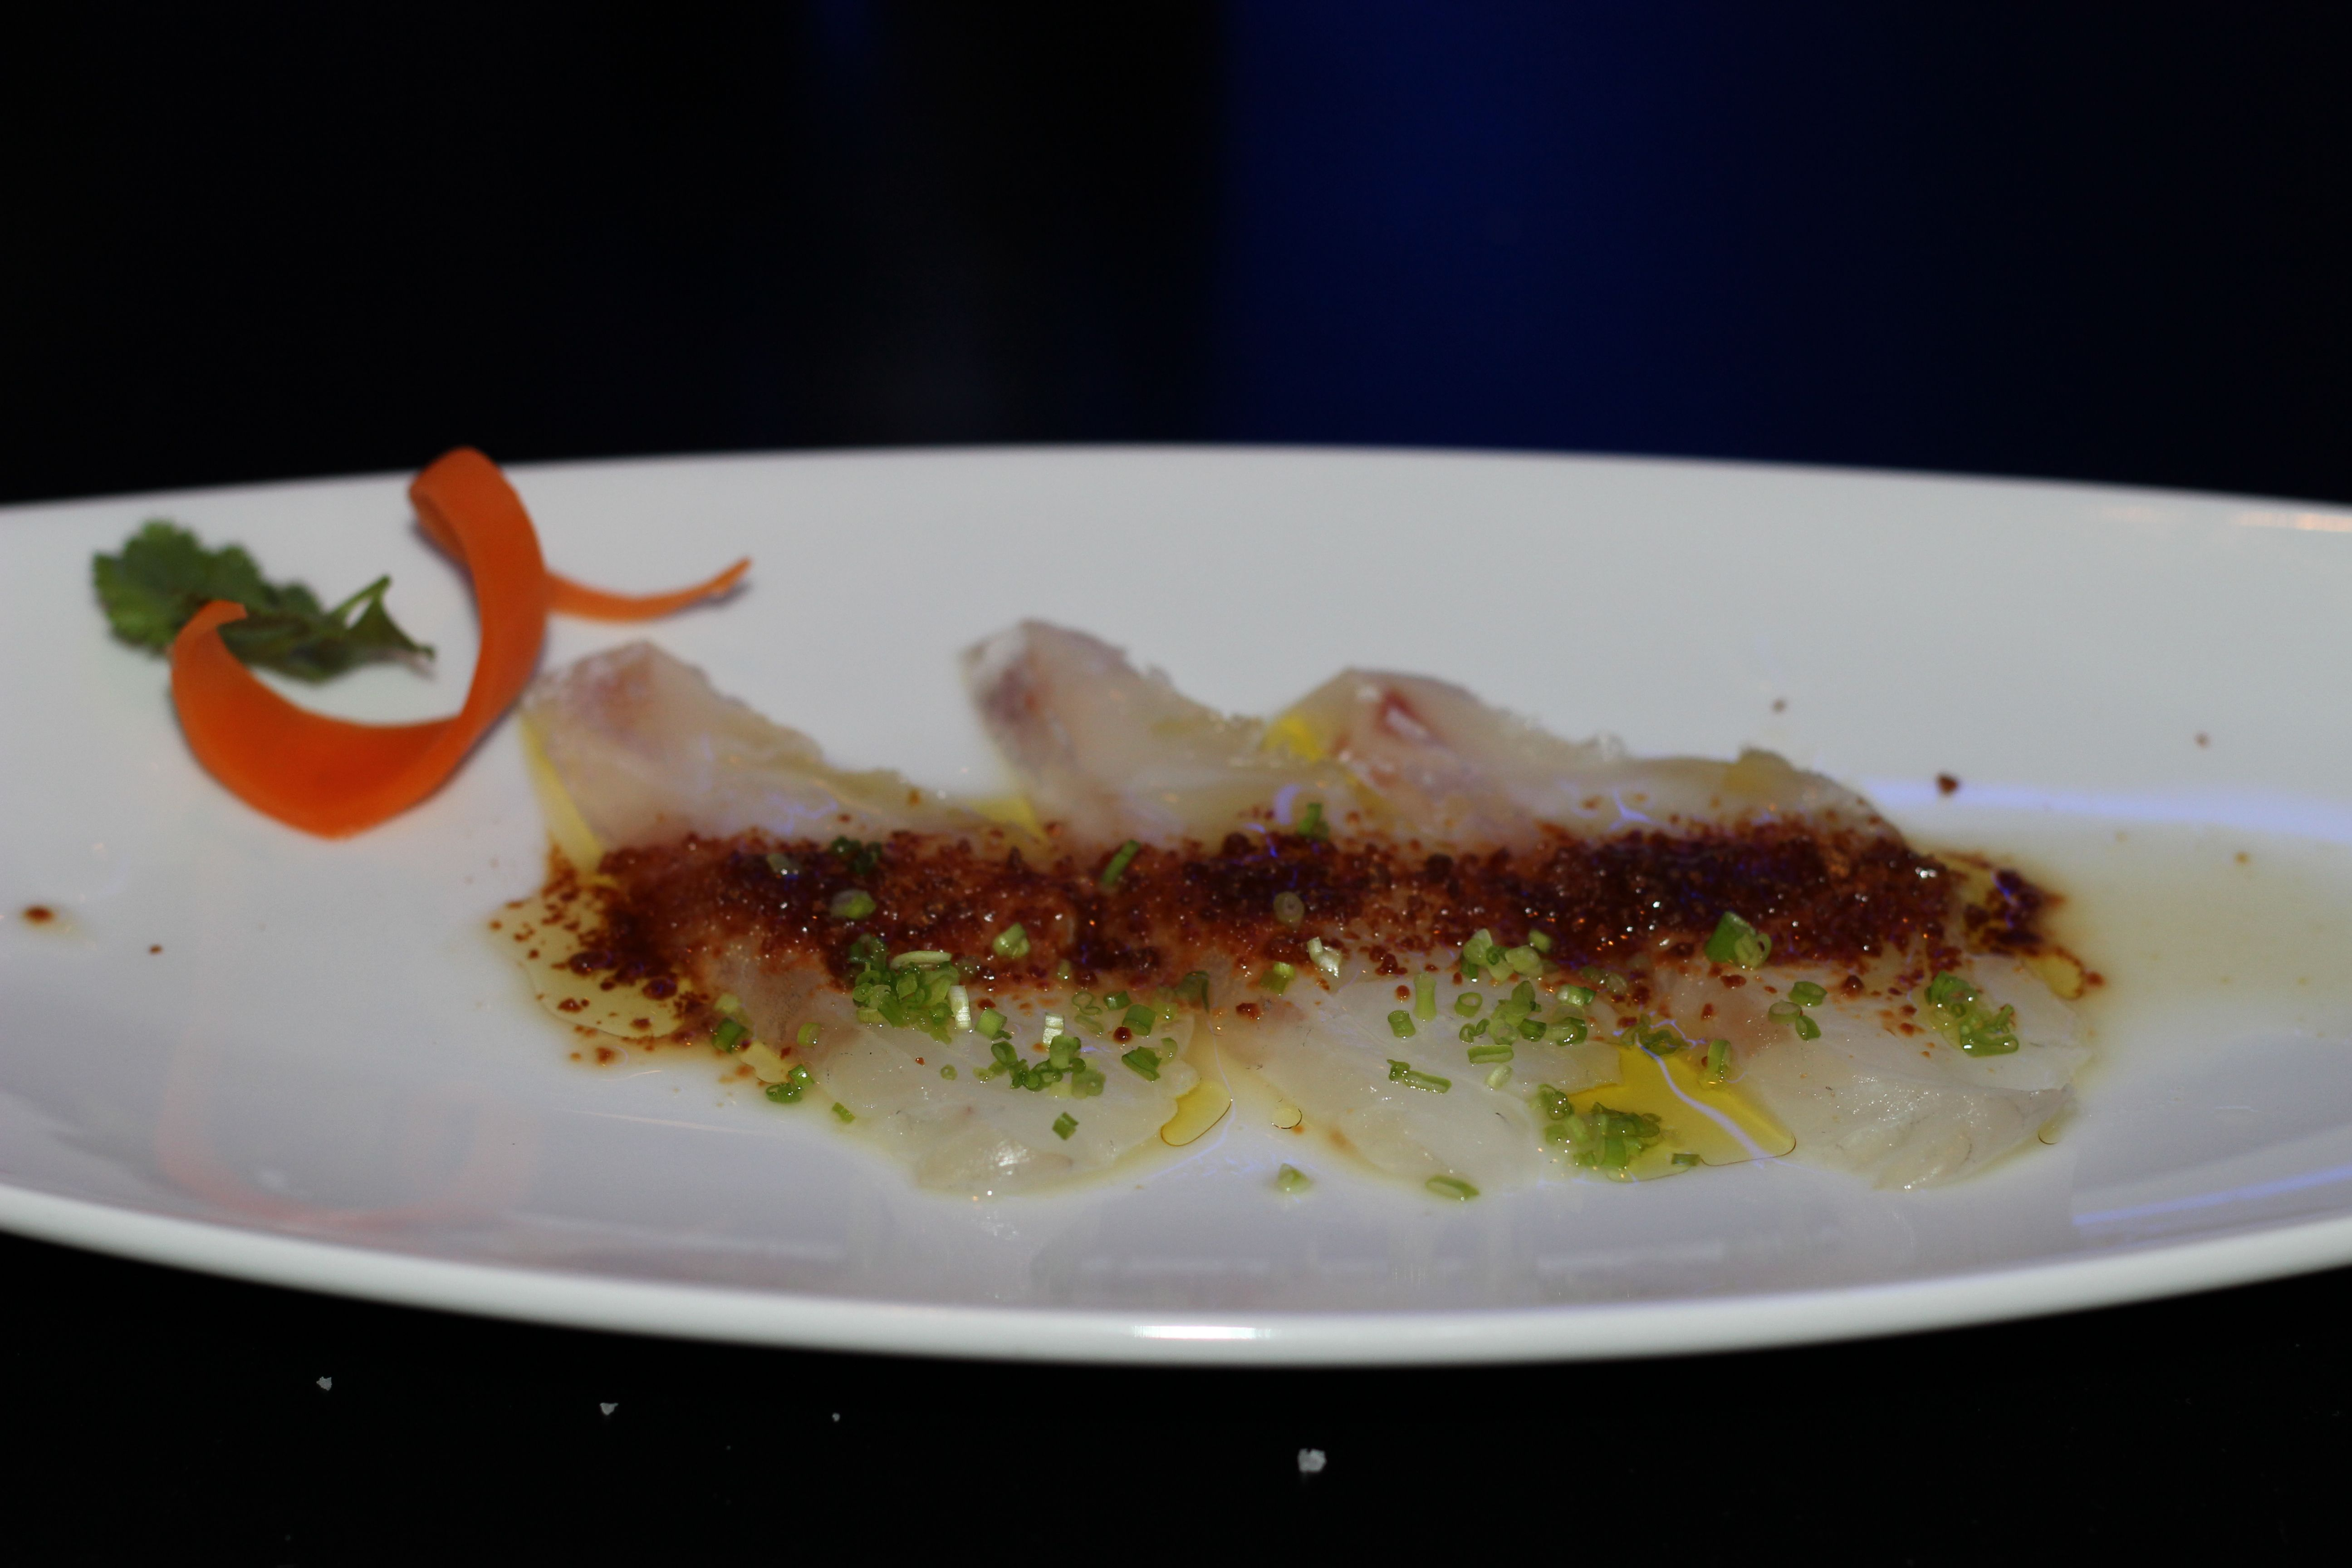 Sea bass with dried miso - the dried miso was a textural and flavour revelation and great with the tender bass